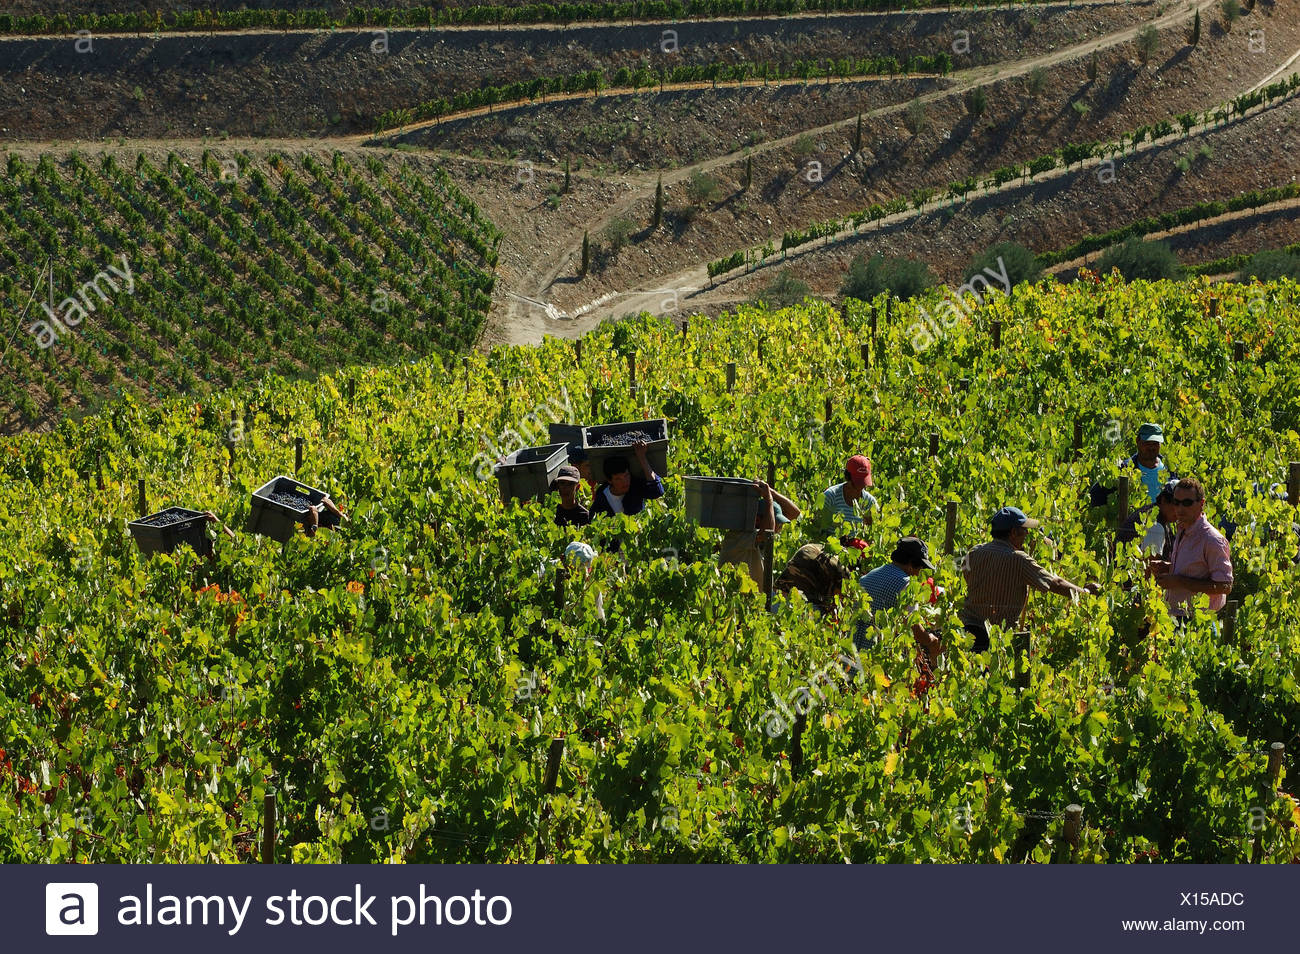 Winegrowing in the Vale Mendiz, grape pickers carrying boxes with grapes, Pinhao, Douro Region, North Portugal, Europe Stock Photo